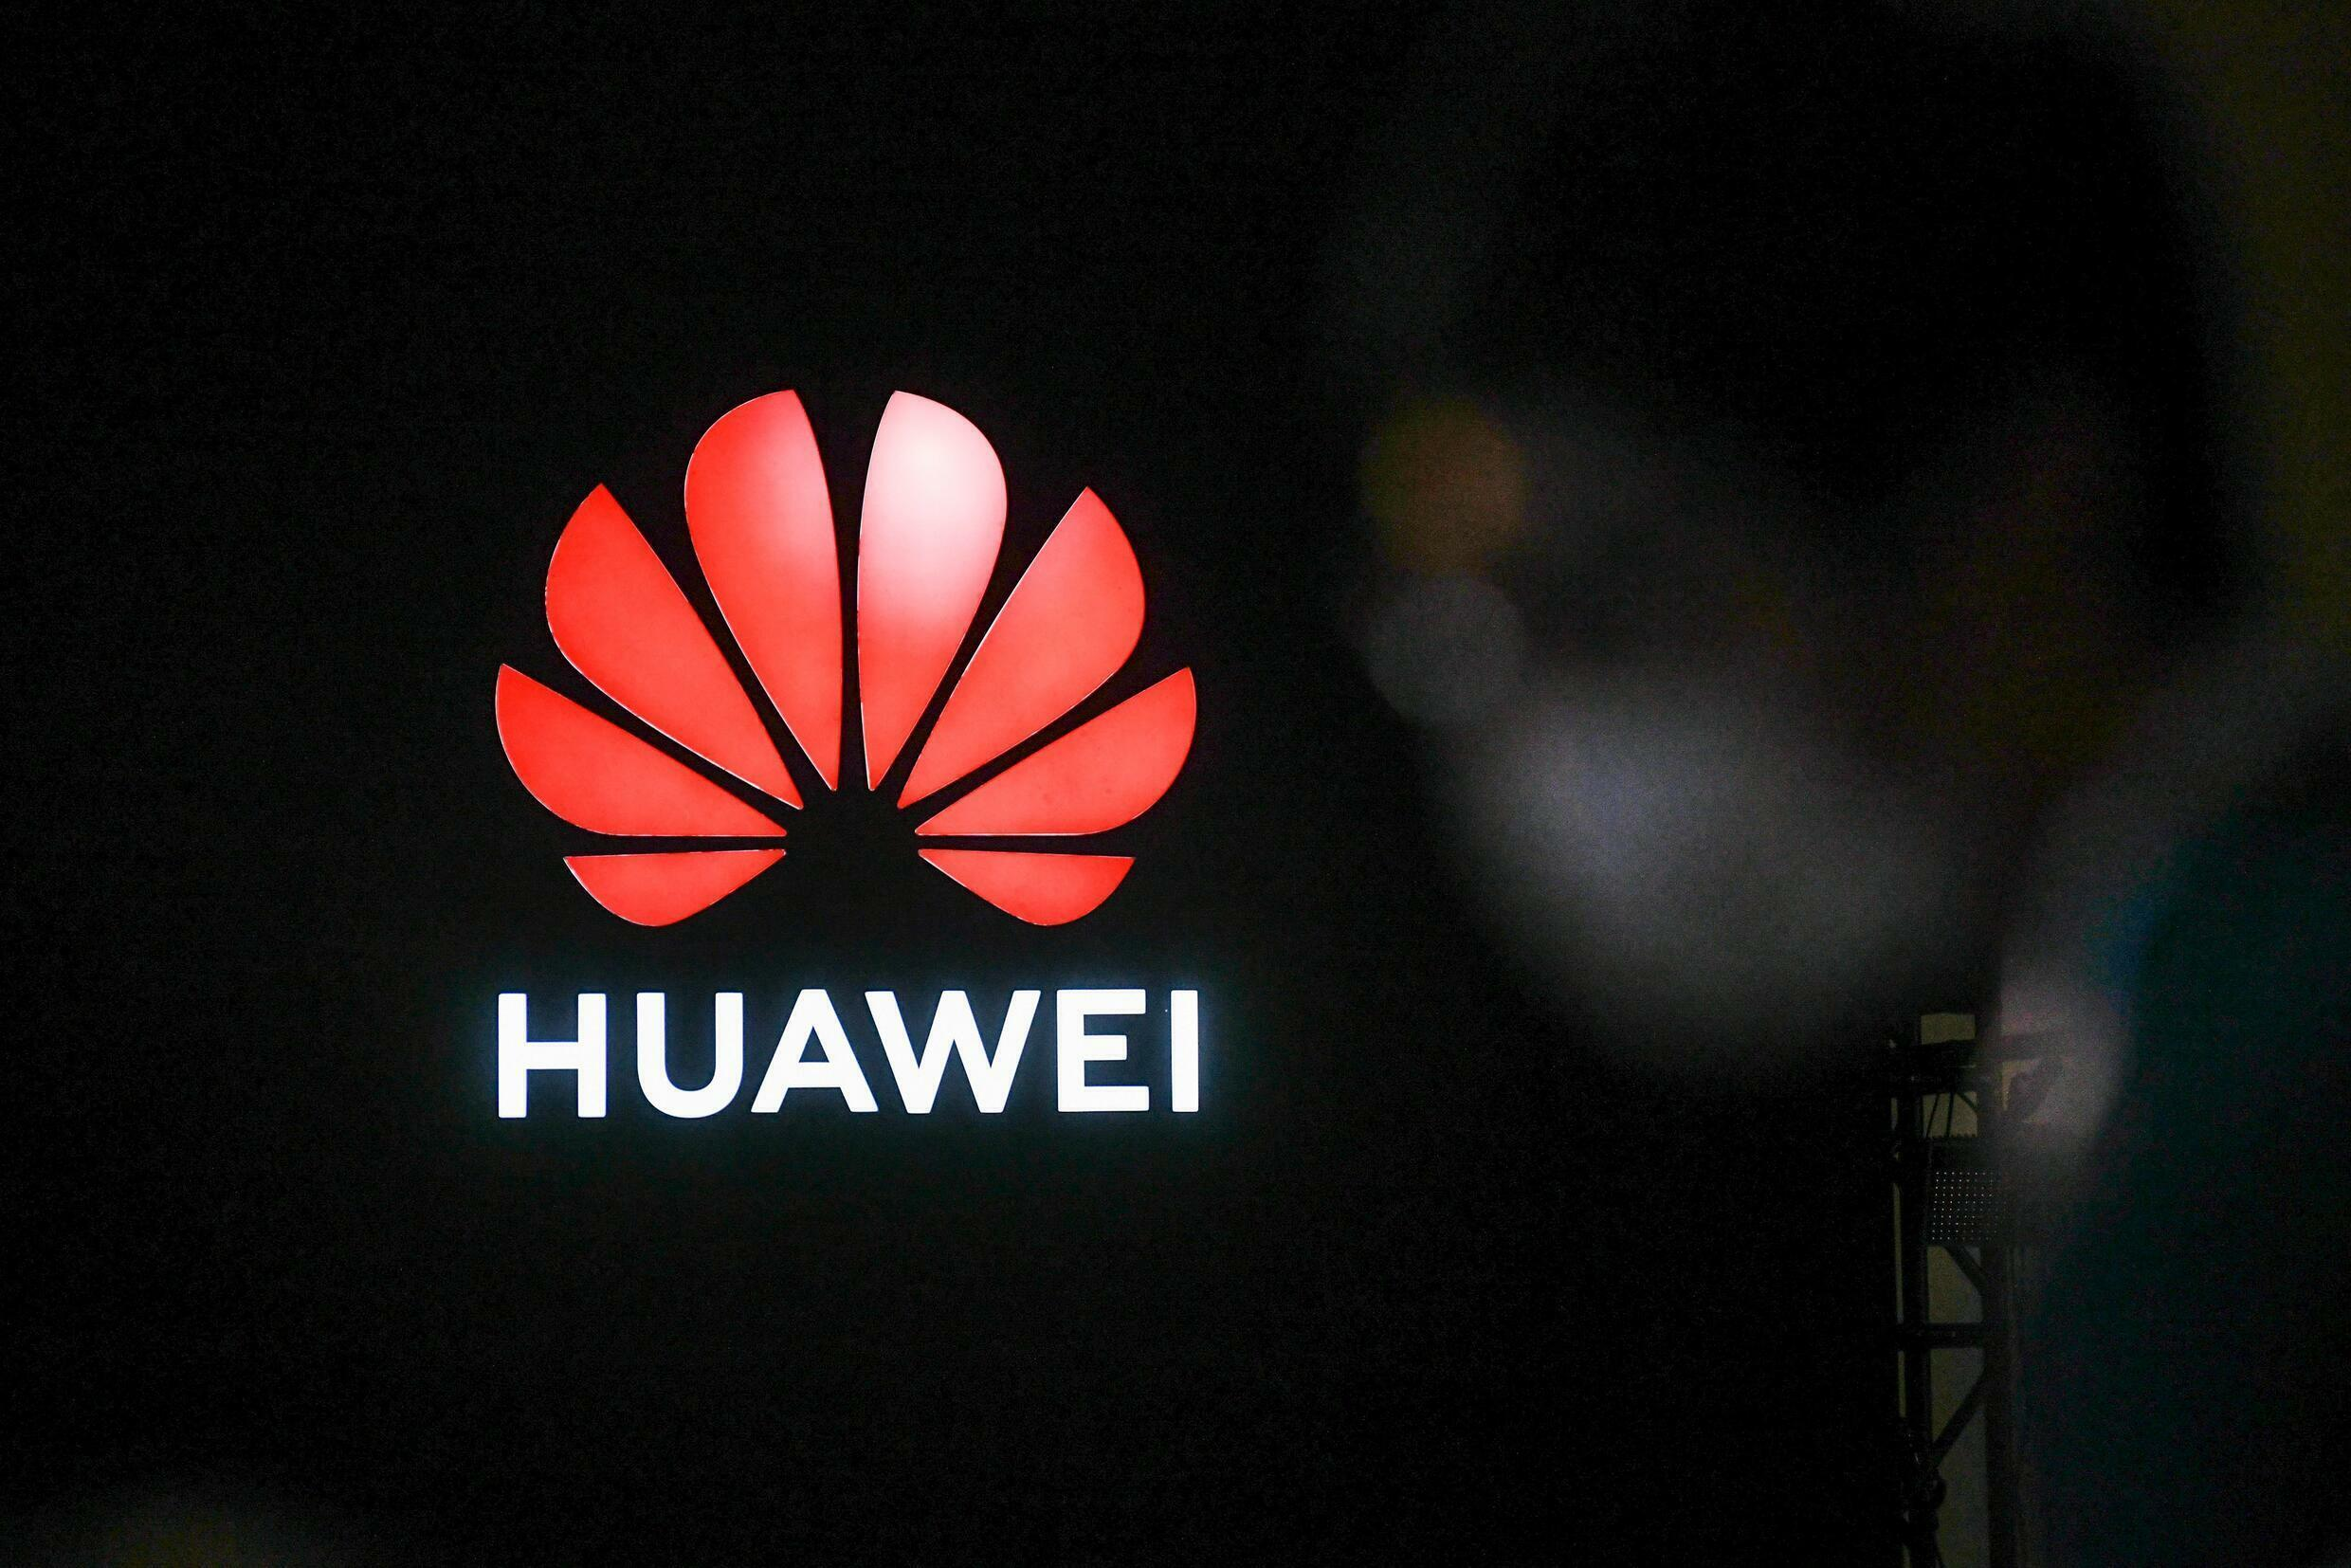 Huawei has been squeezed by US sanctions, which have hammered its supply chain